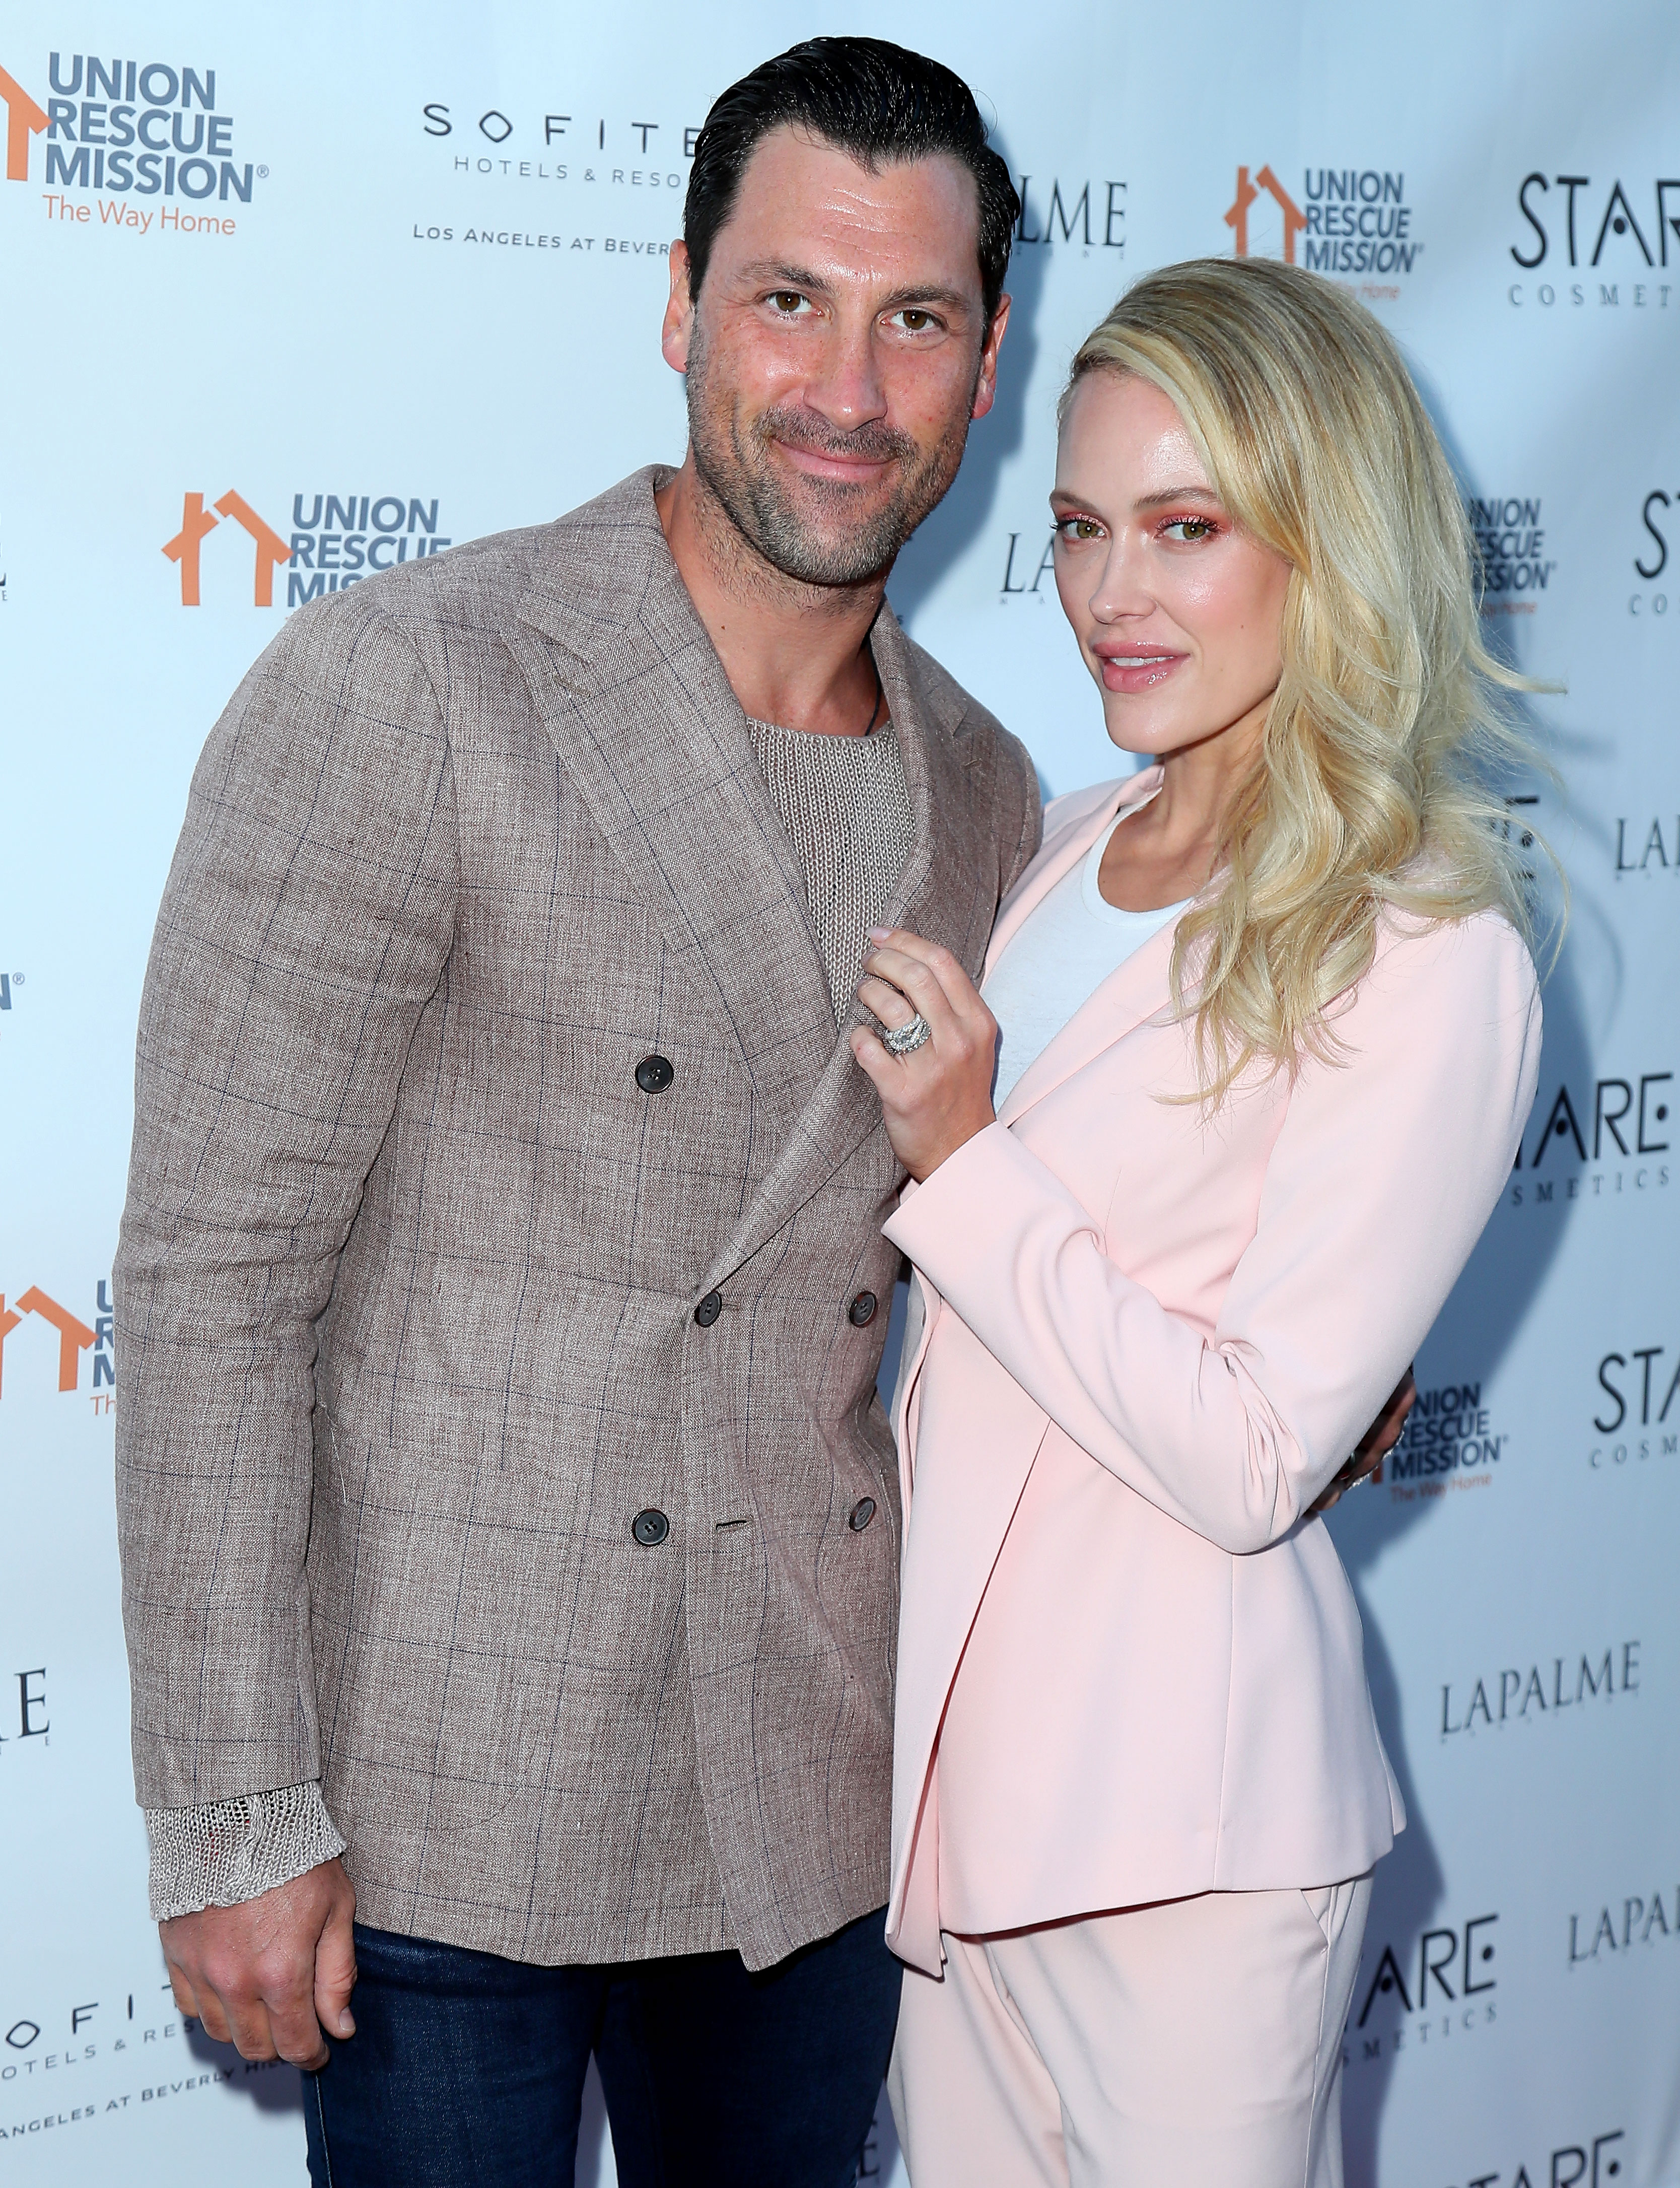 Peta Limbo at Val Jenna Wedding - Maks Chmerkovskiy and Peta Murgatroyd attend Lapalme Magazine's Party For Cover Stars Anthony Anderson And Meagan Good at Sofitel Los Angeles At Beverly Hills on April 16, 2019 in Los Angeles, California.